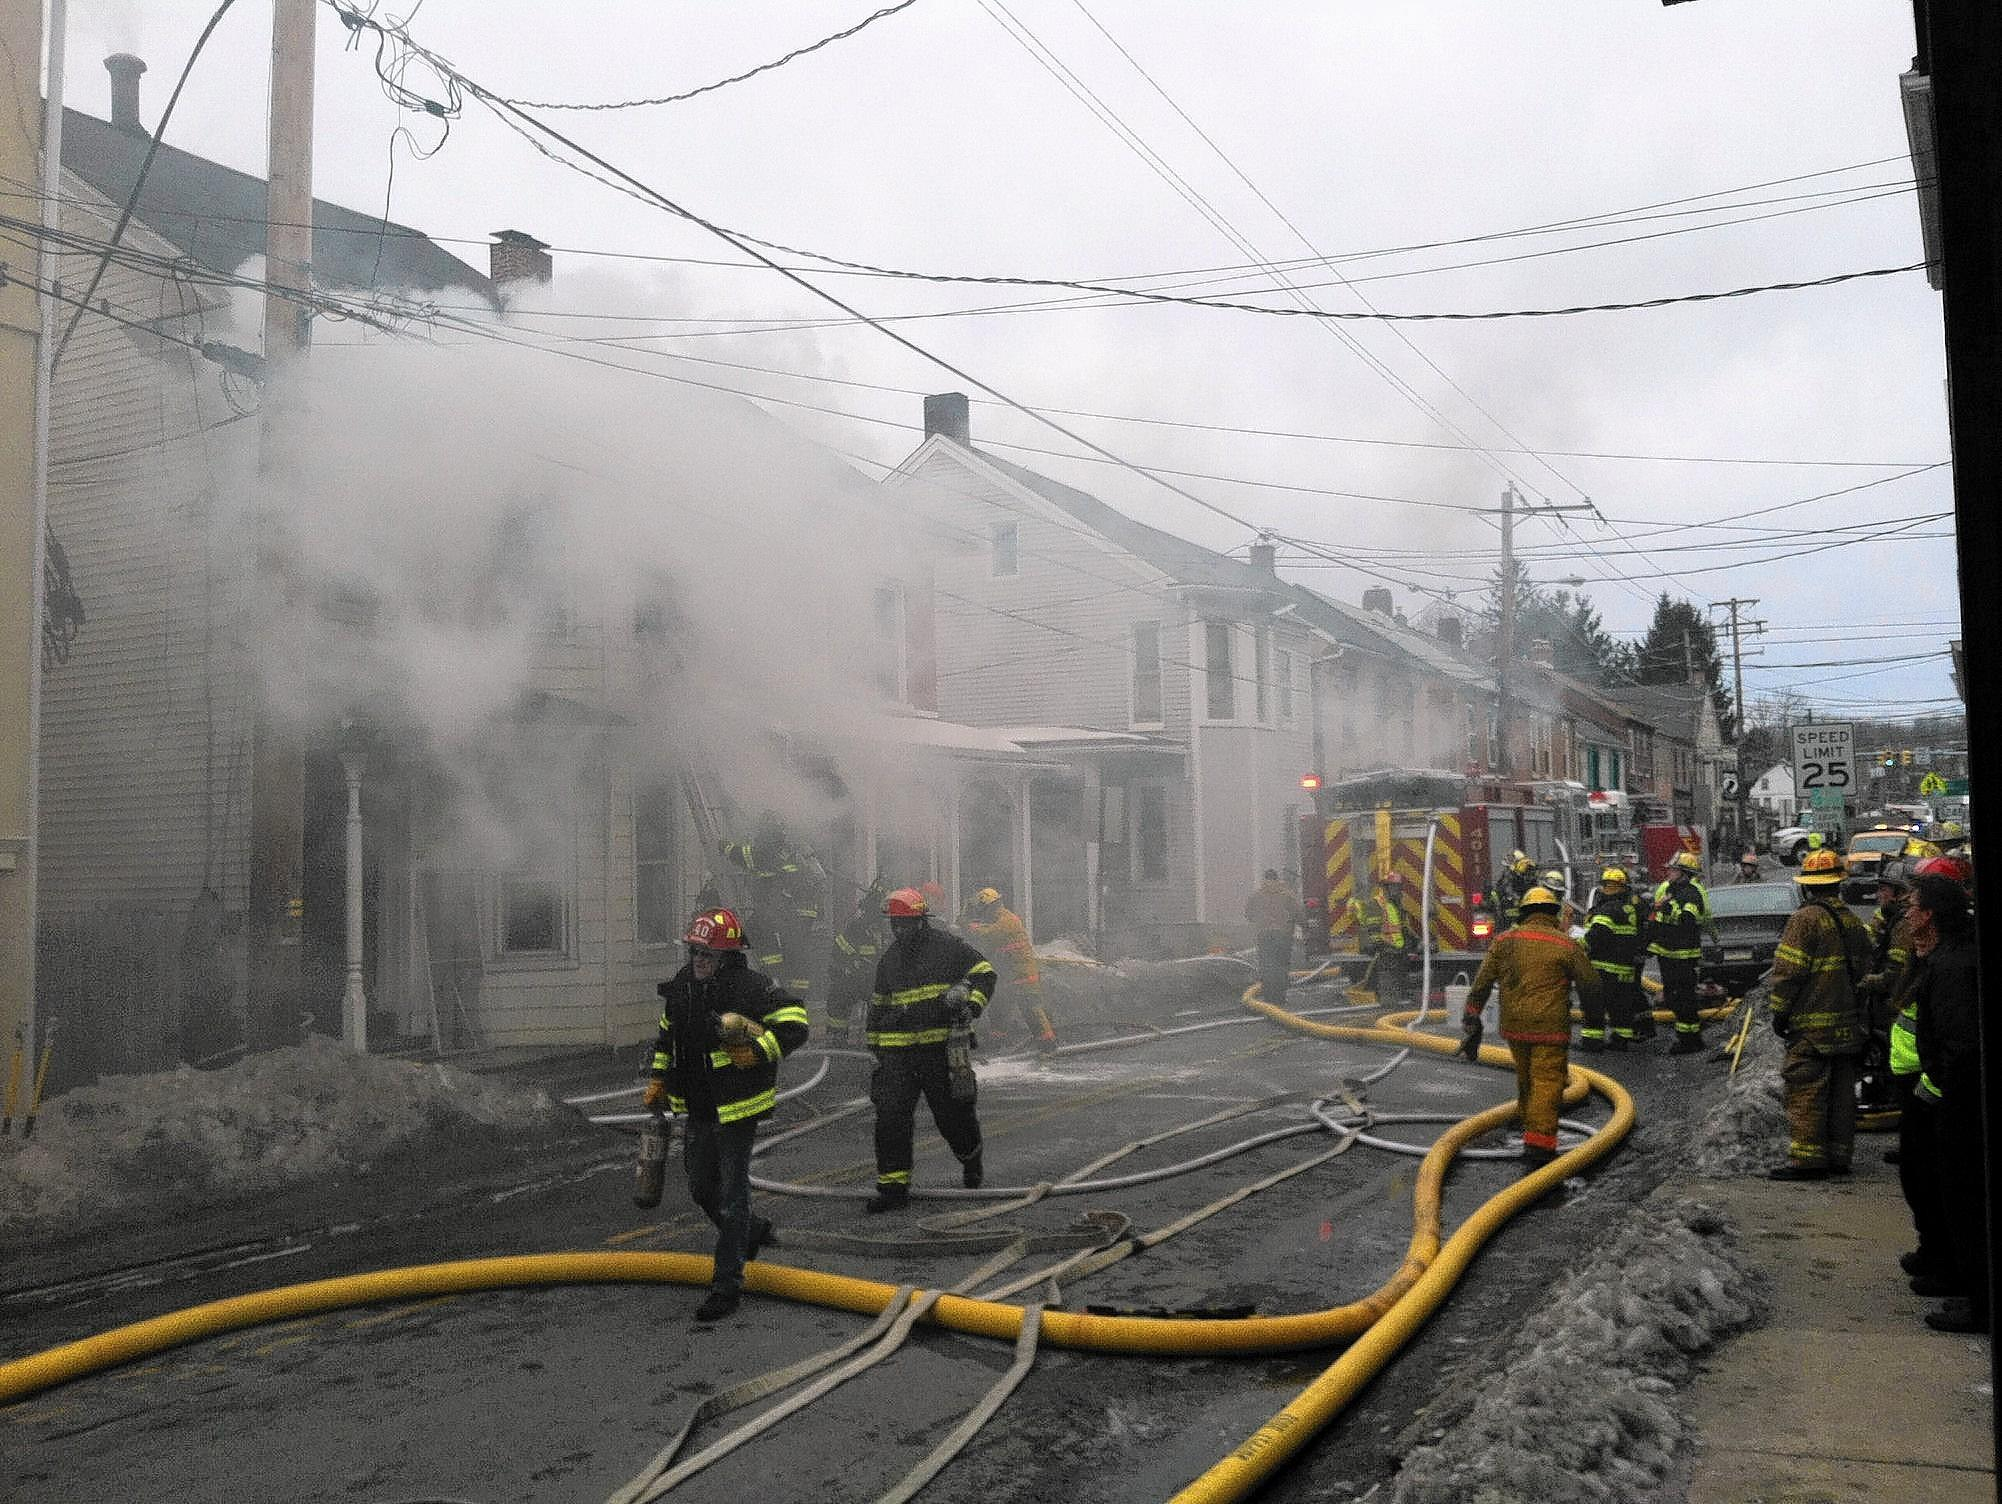 Police said a fire Monday at a home in Bath at 128 S. Chestnut St. has been ruled undetermined.